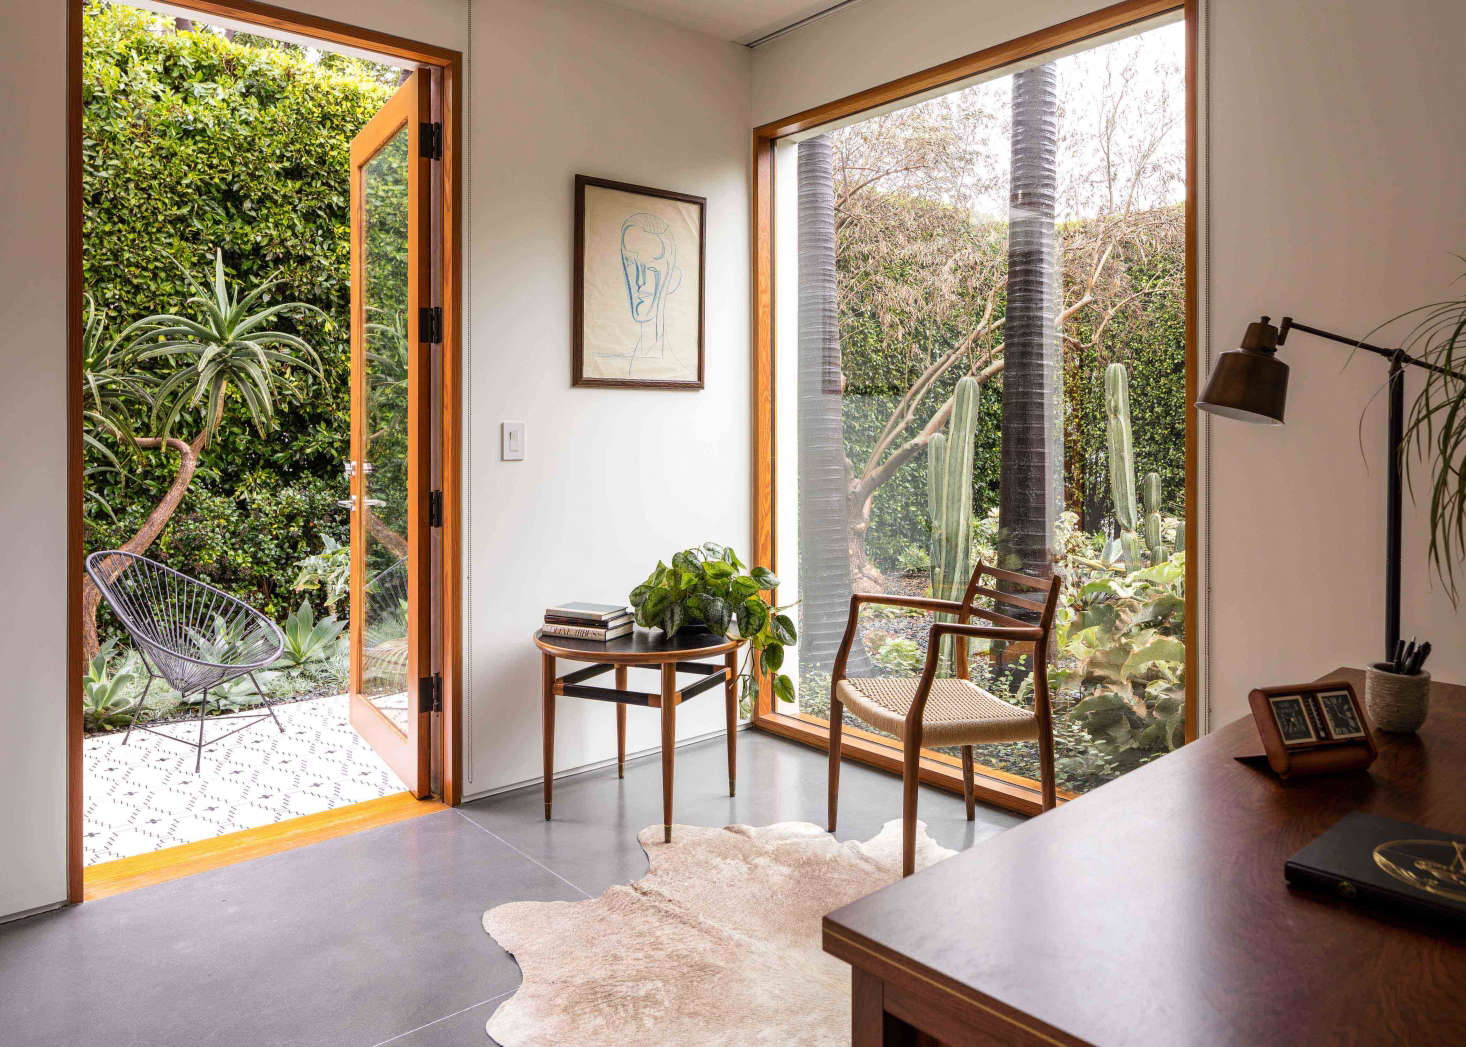 garden home office cheap connection to garden from home office best professional landscape 2017 campion walker and jacobschangs